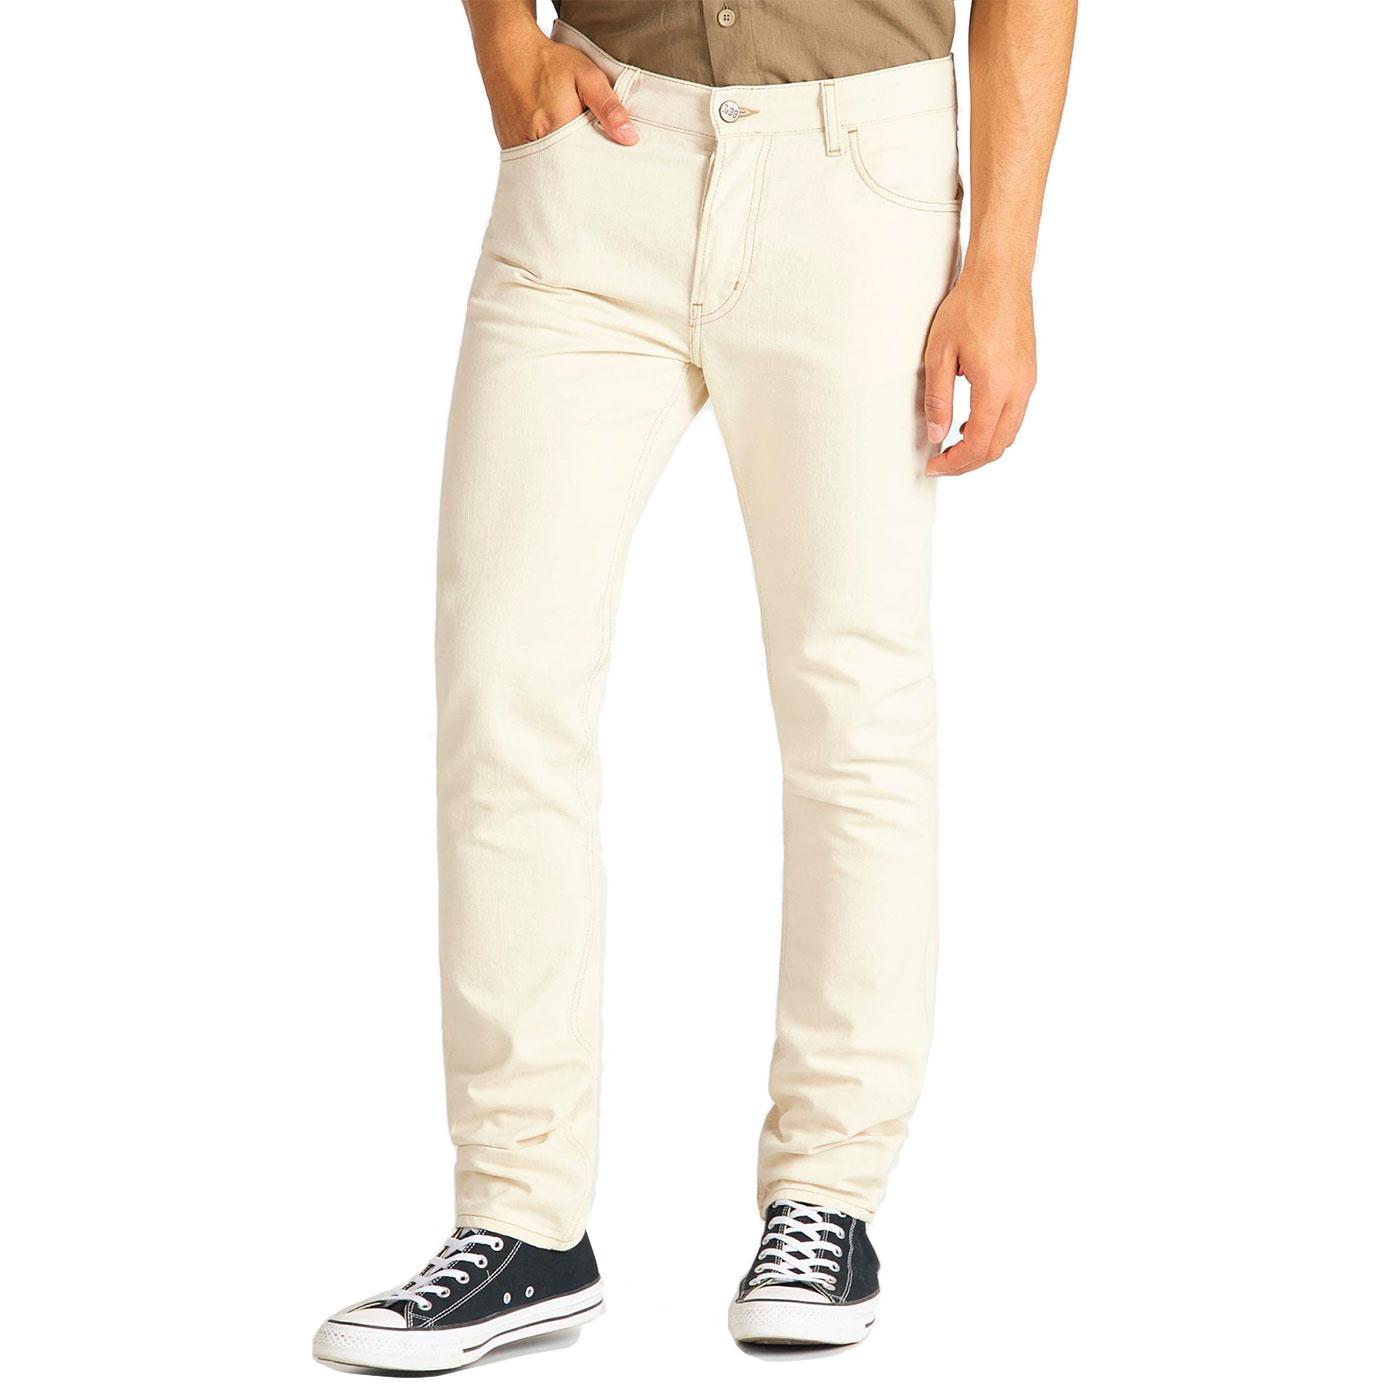 Rider LEE Eco Rinse Rigid Biodegradable Jeans ECRU